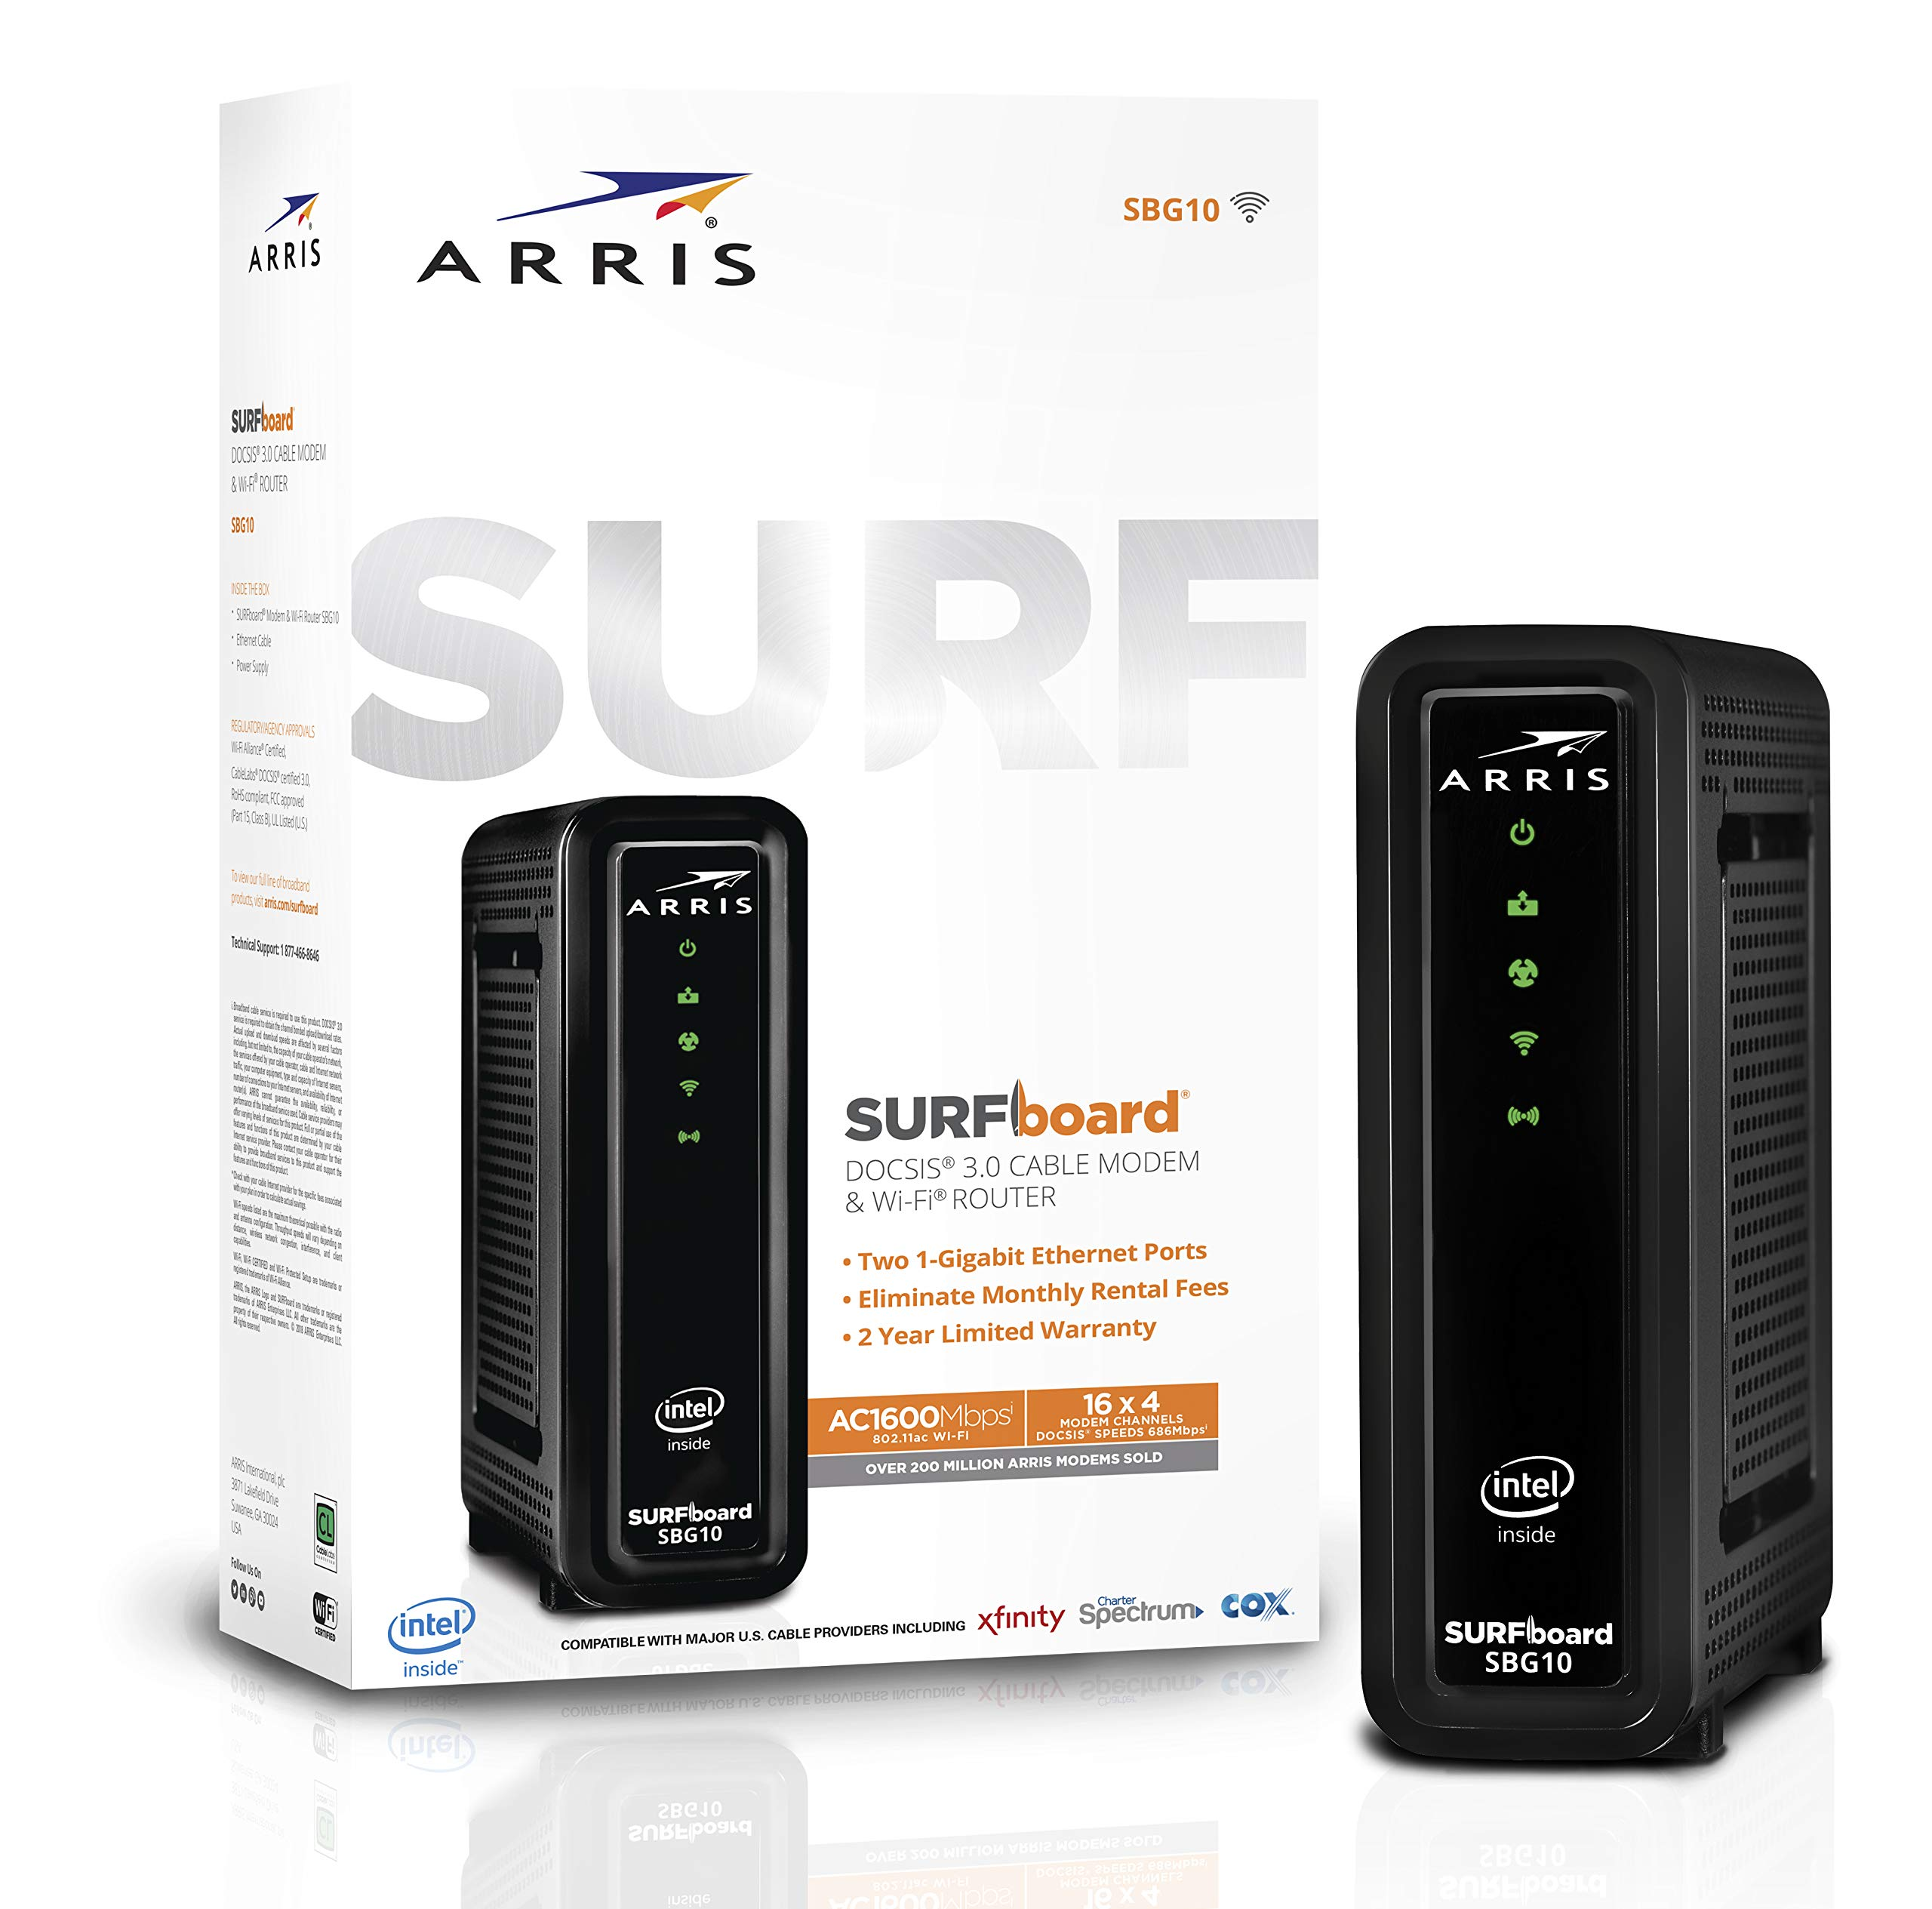 ARRIS Surfboard (16x4) DOCSIS 3.0 Cable Modem Plus AC1600 Dual Band Wi-Fi Router, 686 Mbps Max Speed, Certified for Xfinity, Spectrum, Cox & More (SBG10) by ARRIS (Image #1)